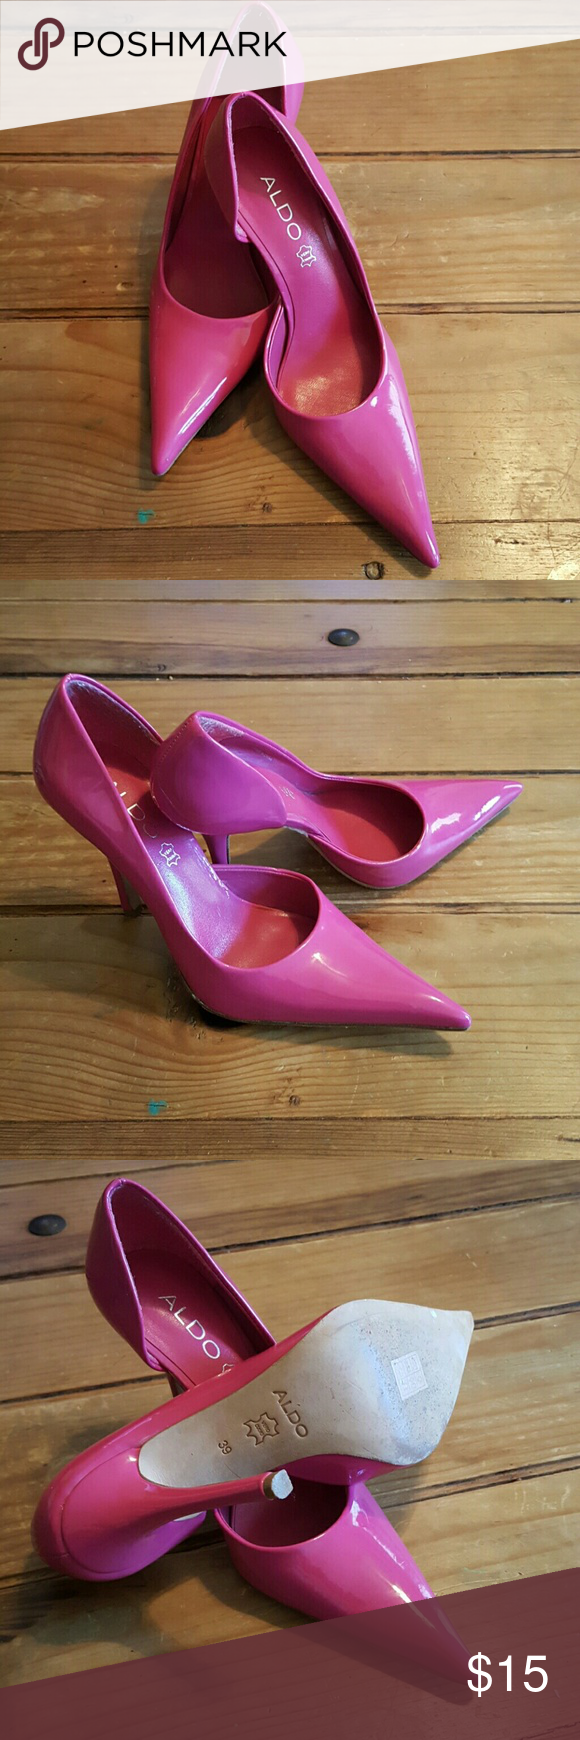 60dd3ffbf31d Hot Pink Sexy Aldo Stiletto Heels Purchased these for my wife